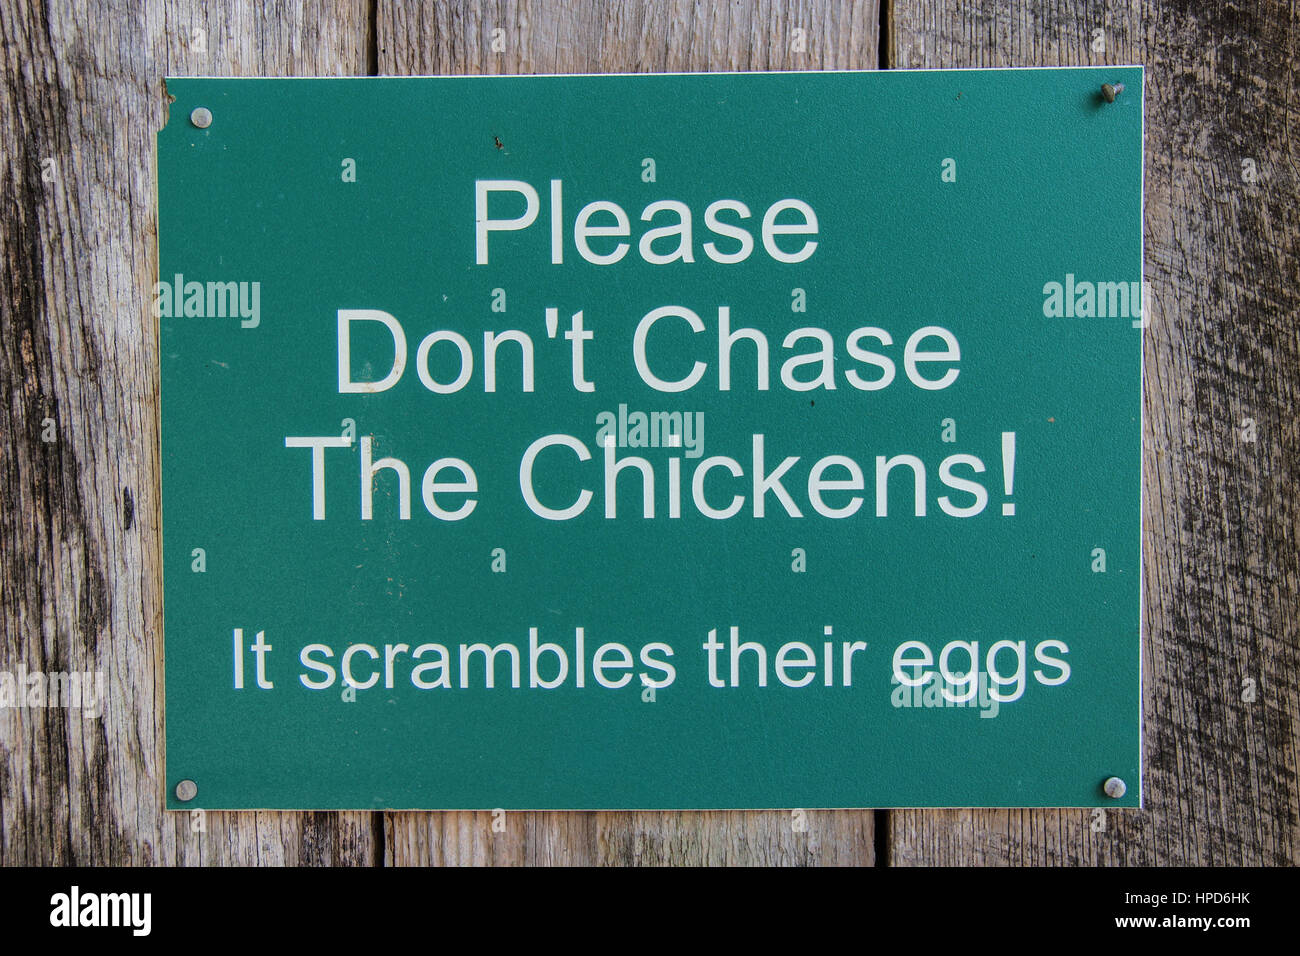 Please Don't Chase the Chickens sign - Stock Image